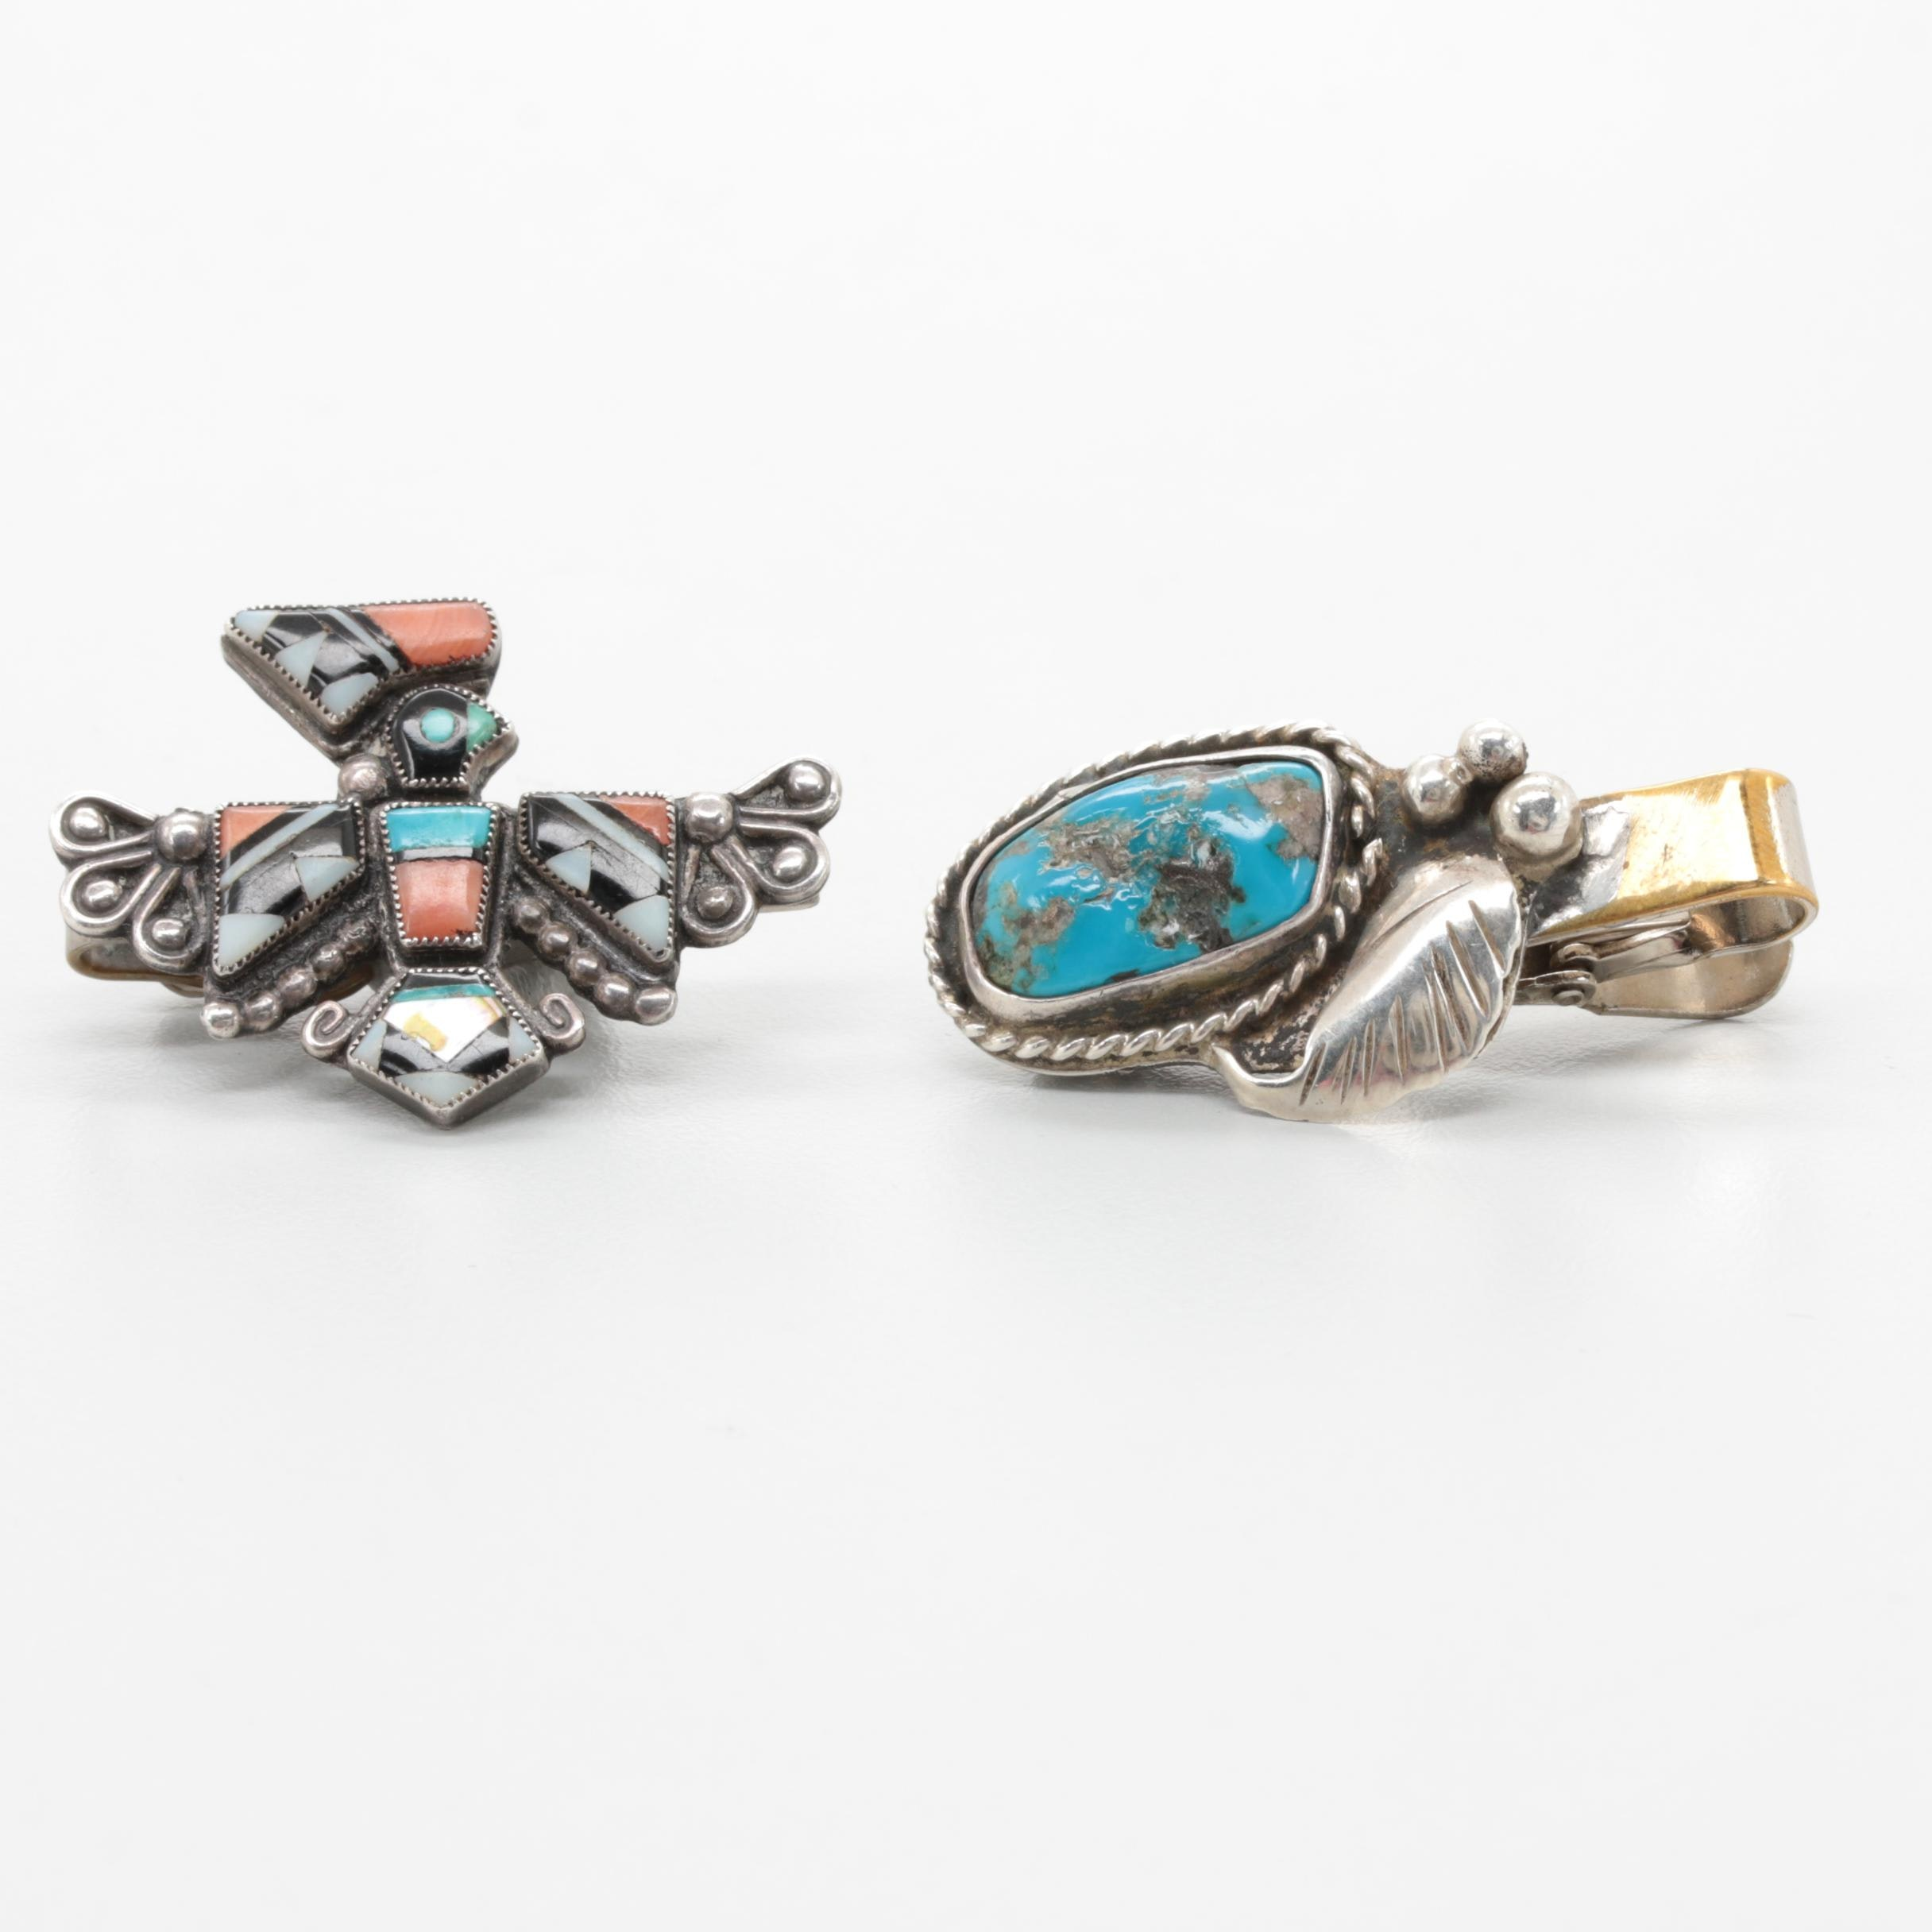 Southwestern Style Sterling Silver Tie Clip Assortment with Turquoise and Coral